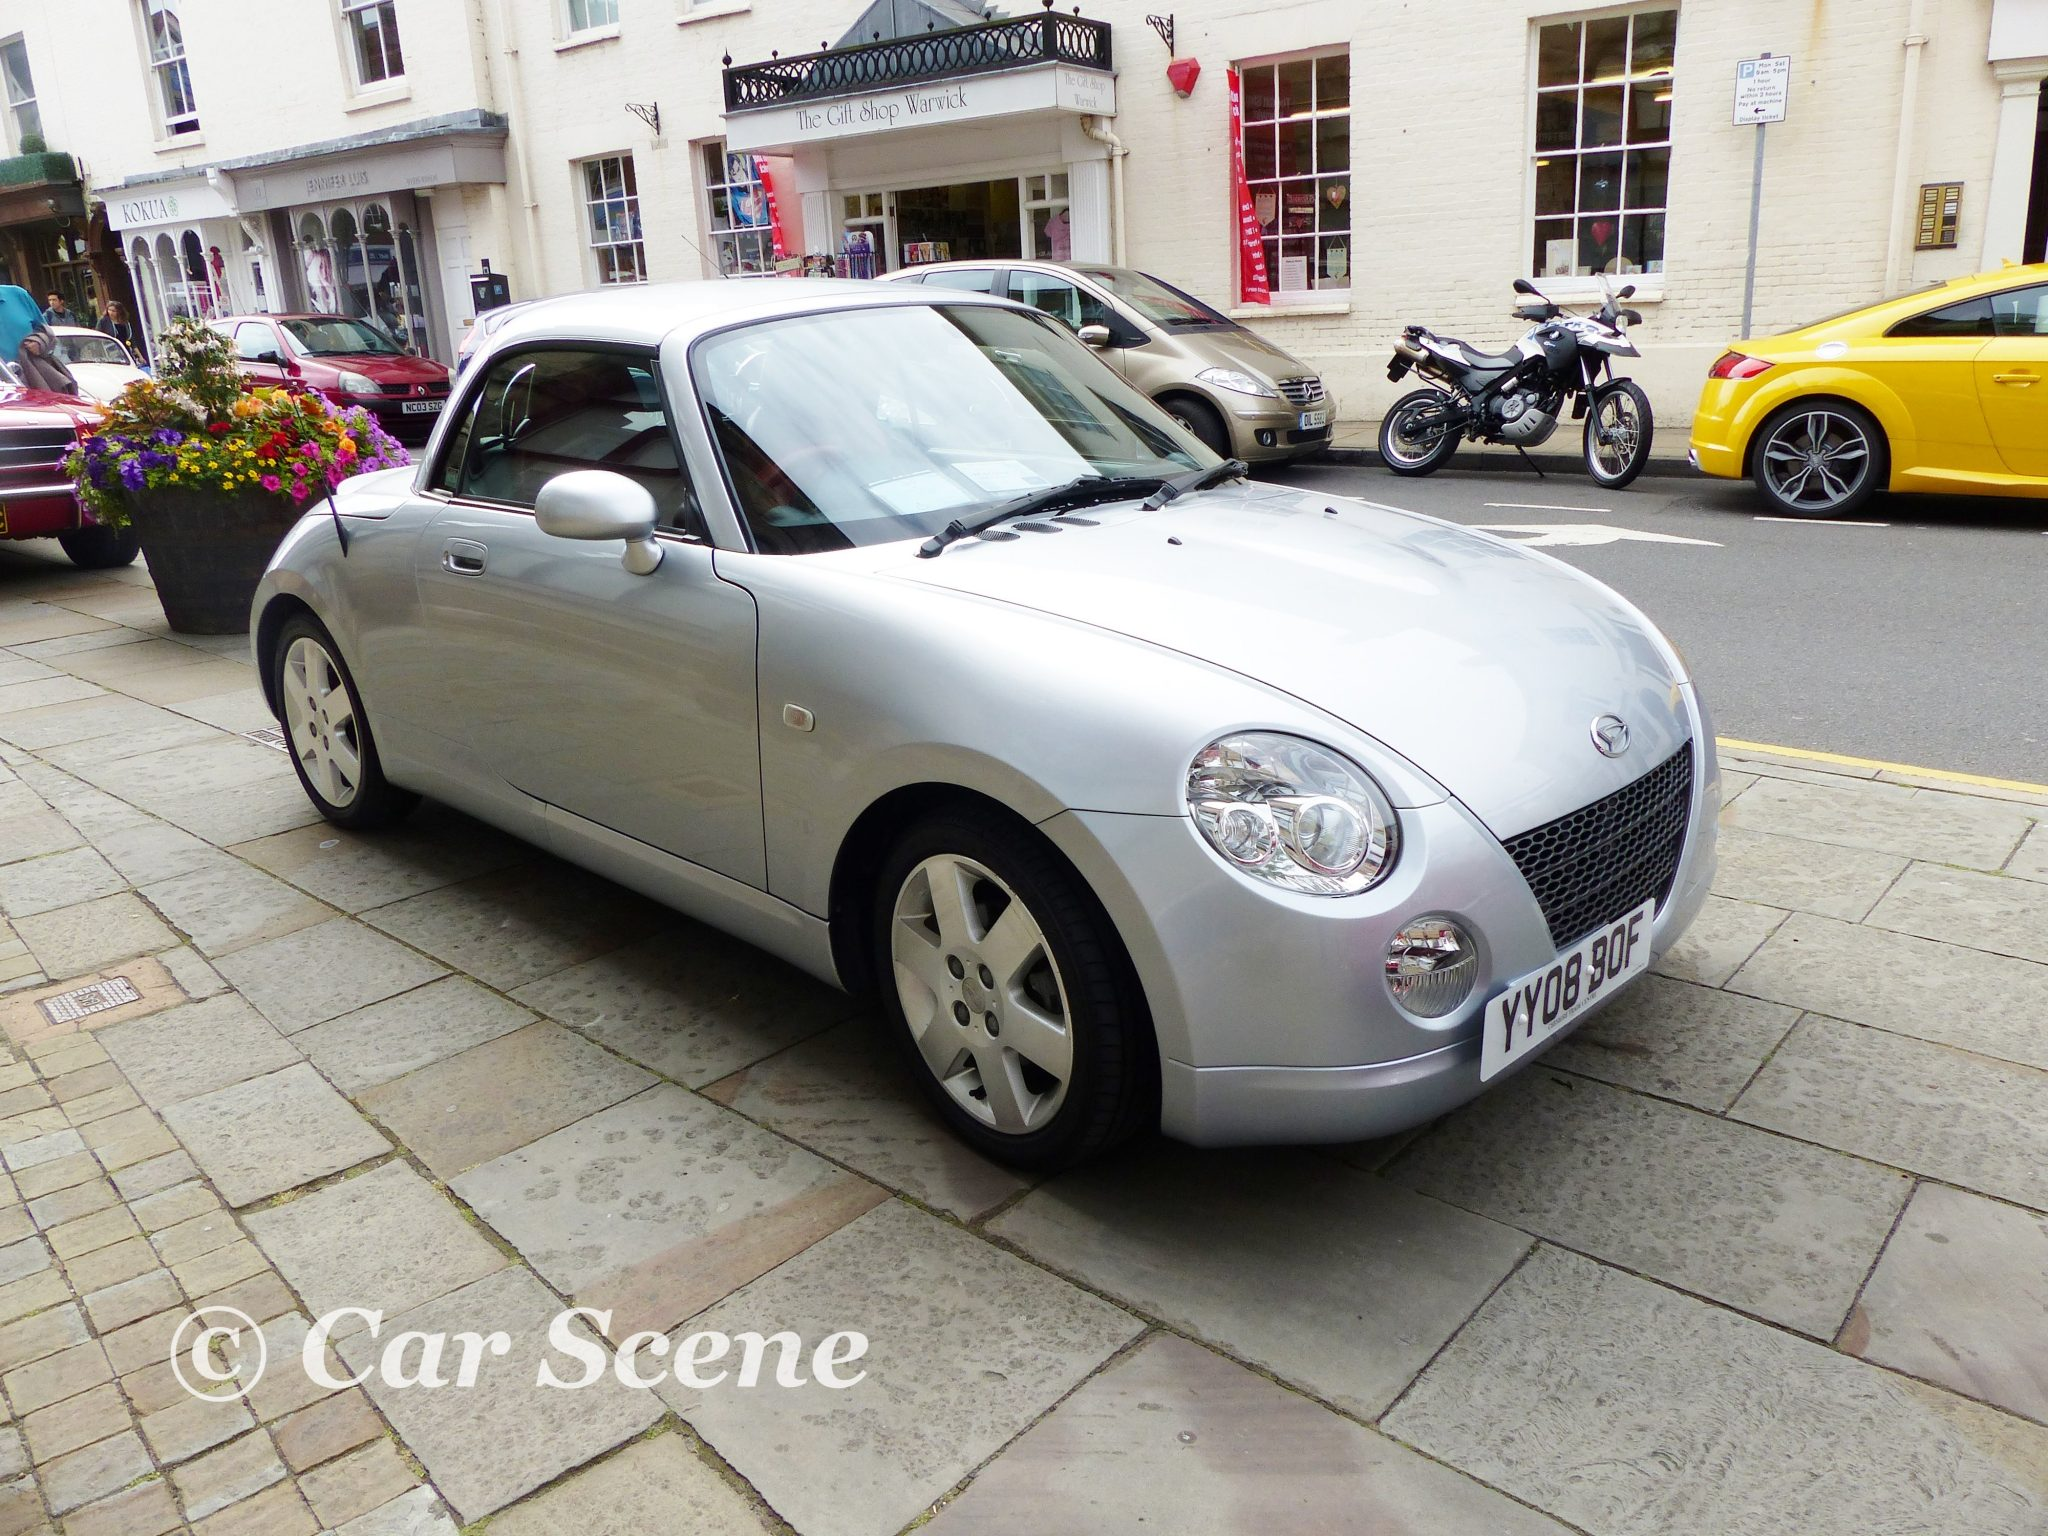 2008 Daihatsu 1.3Ltr. Copen front side view